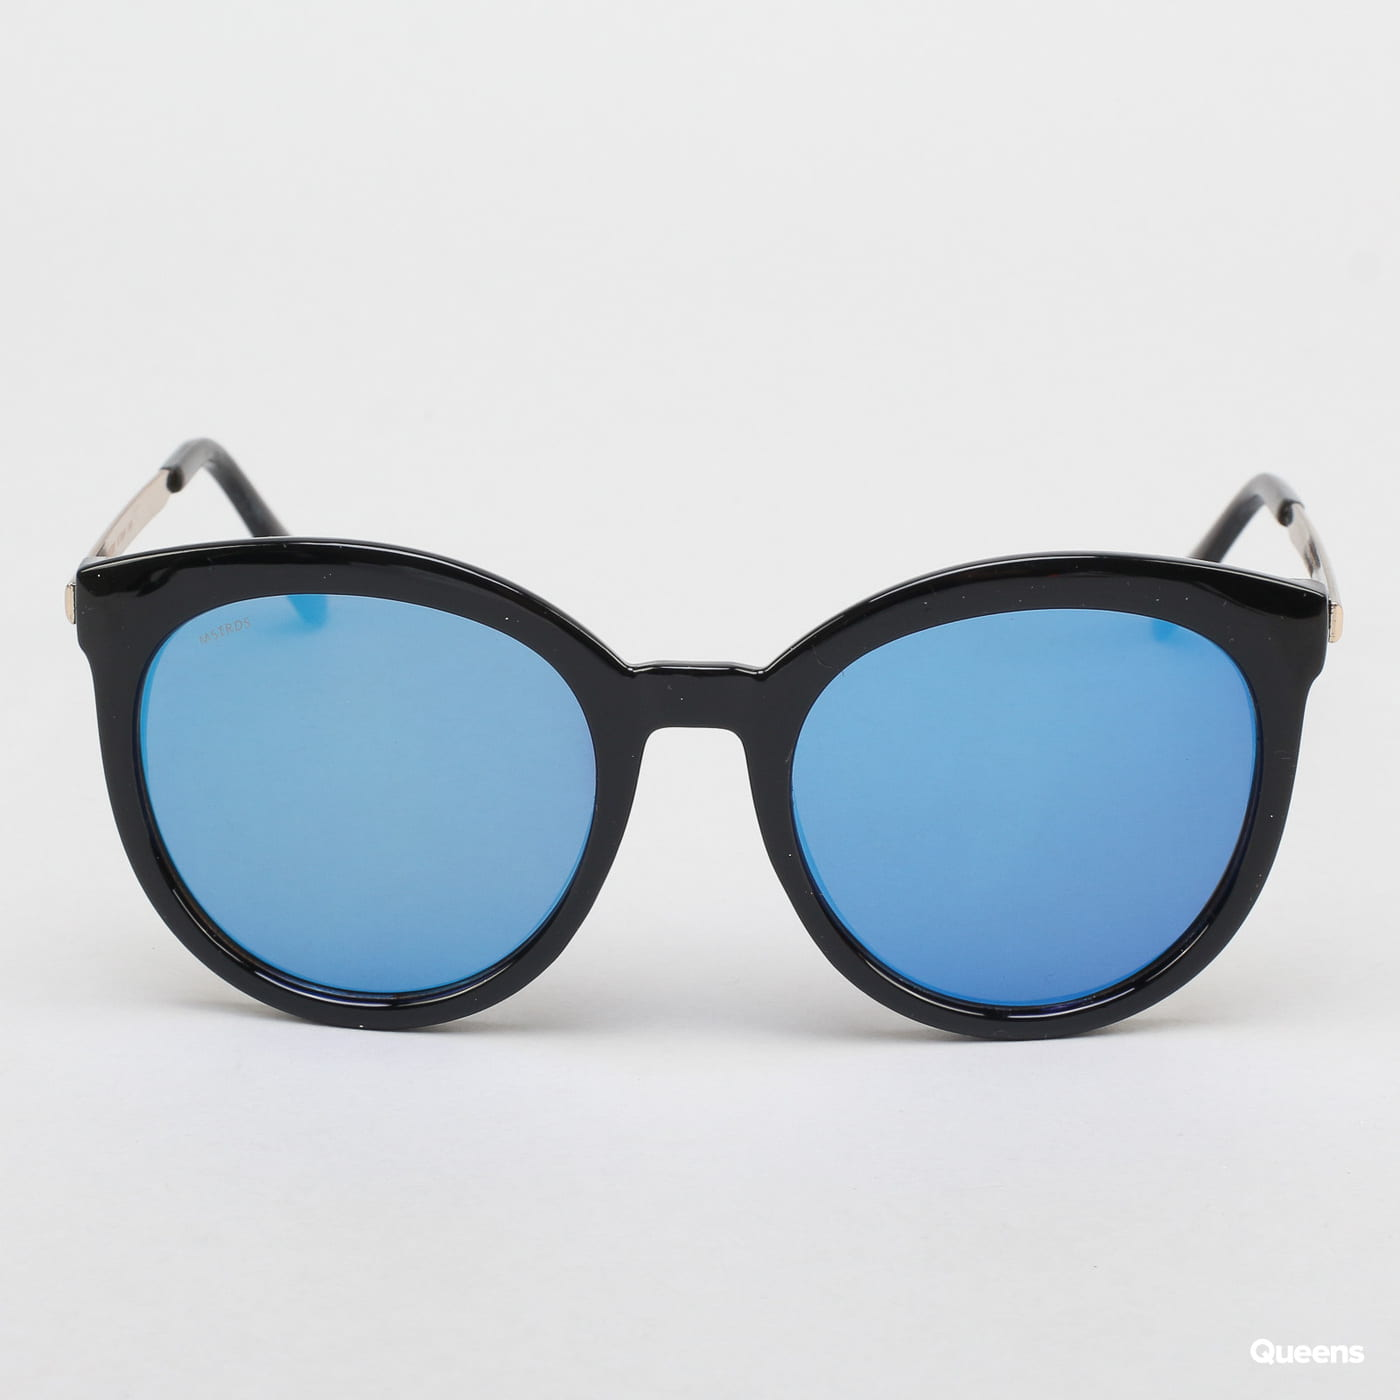 MD Sunglasses October schwarz / blau